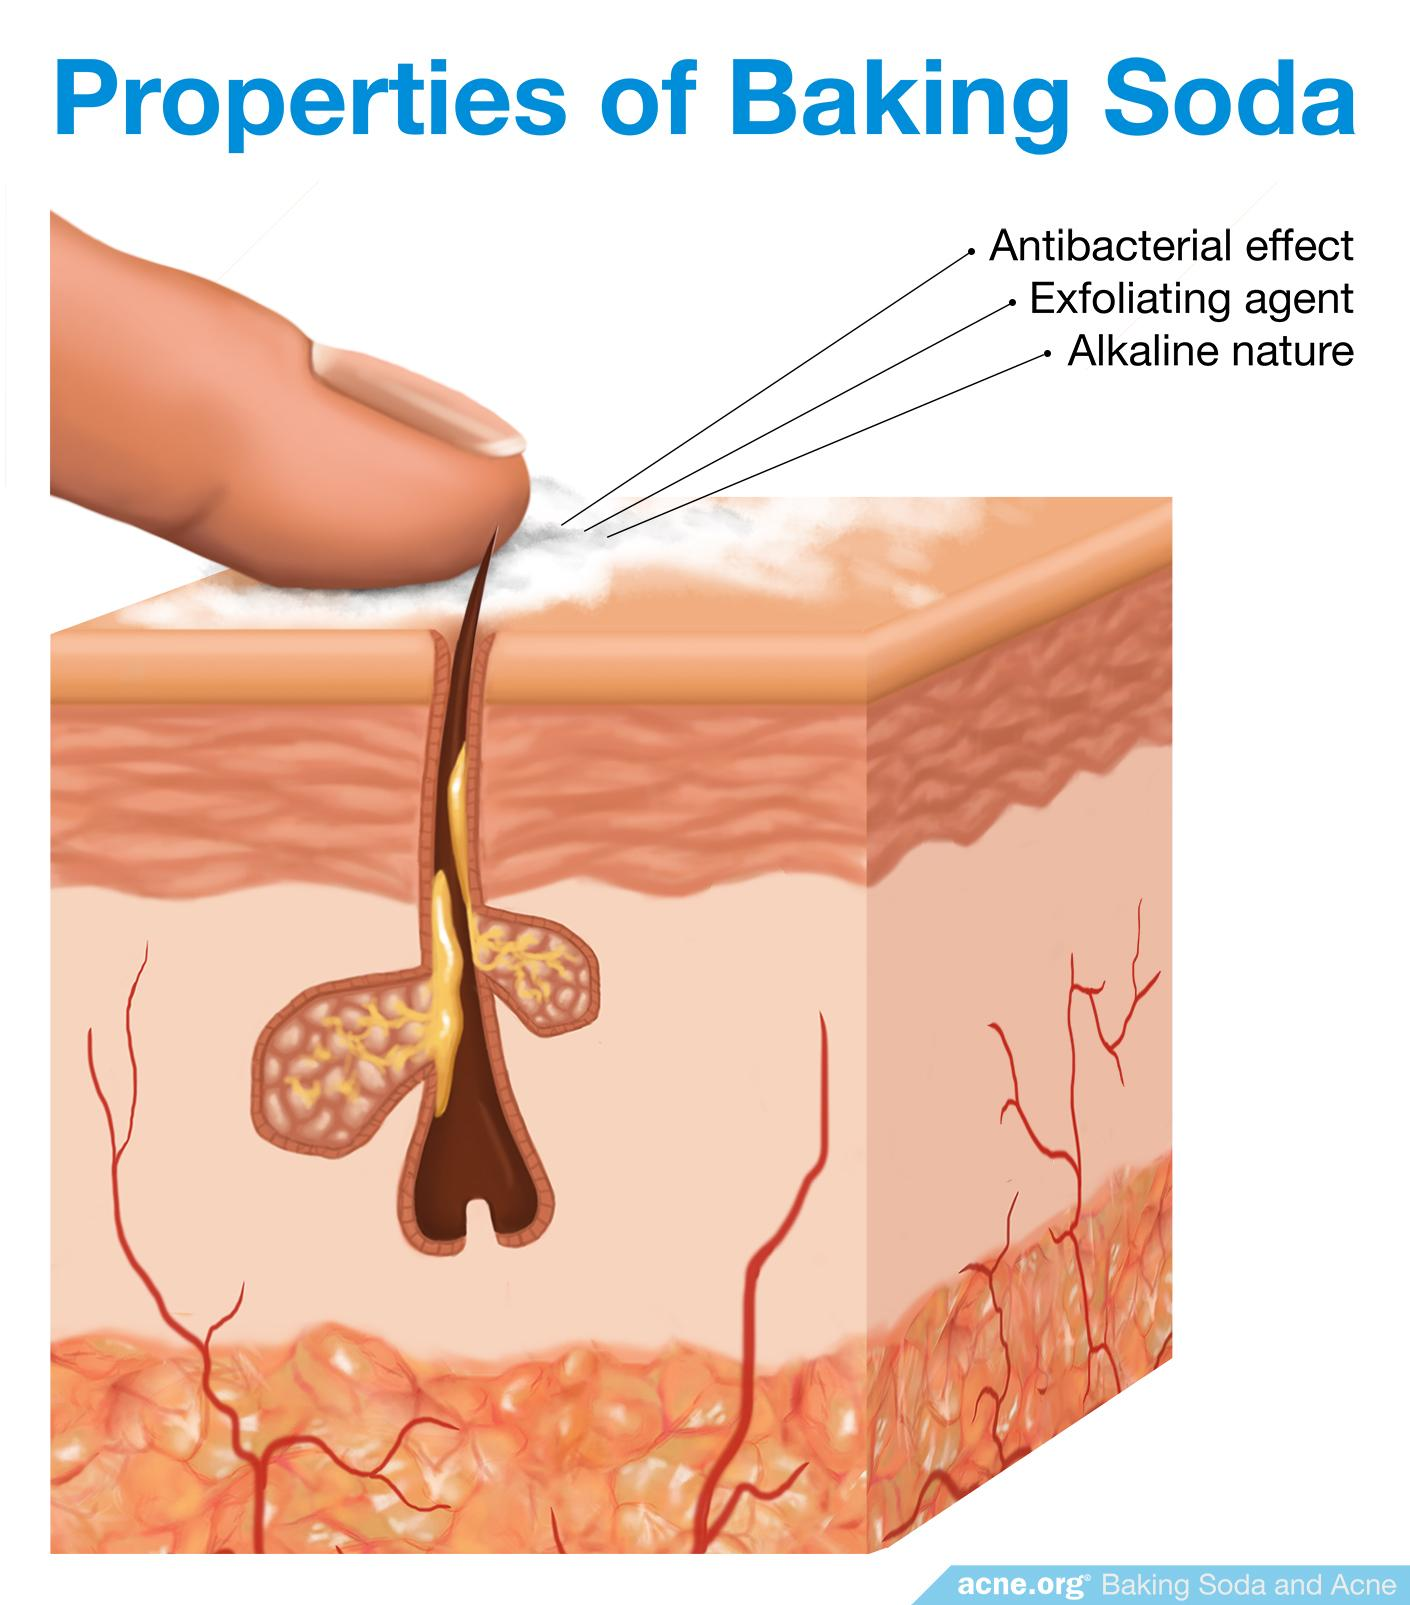 Properties of Baking Soda